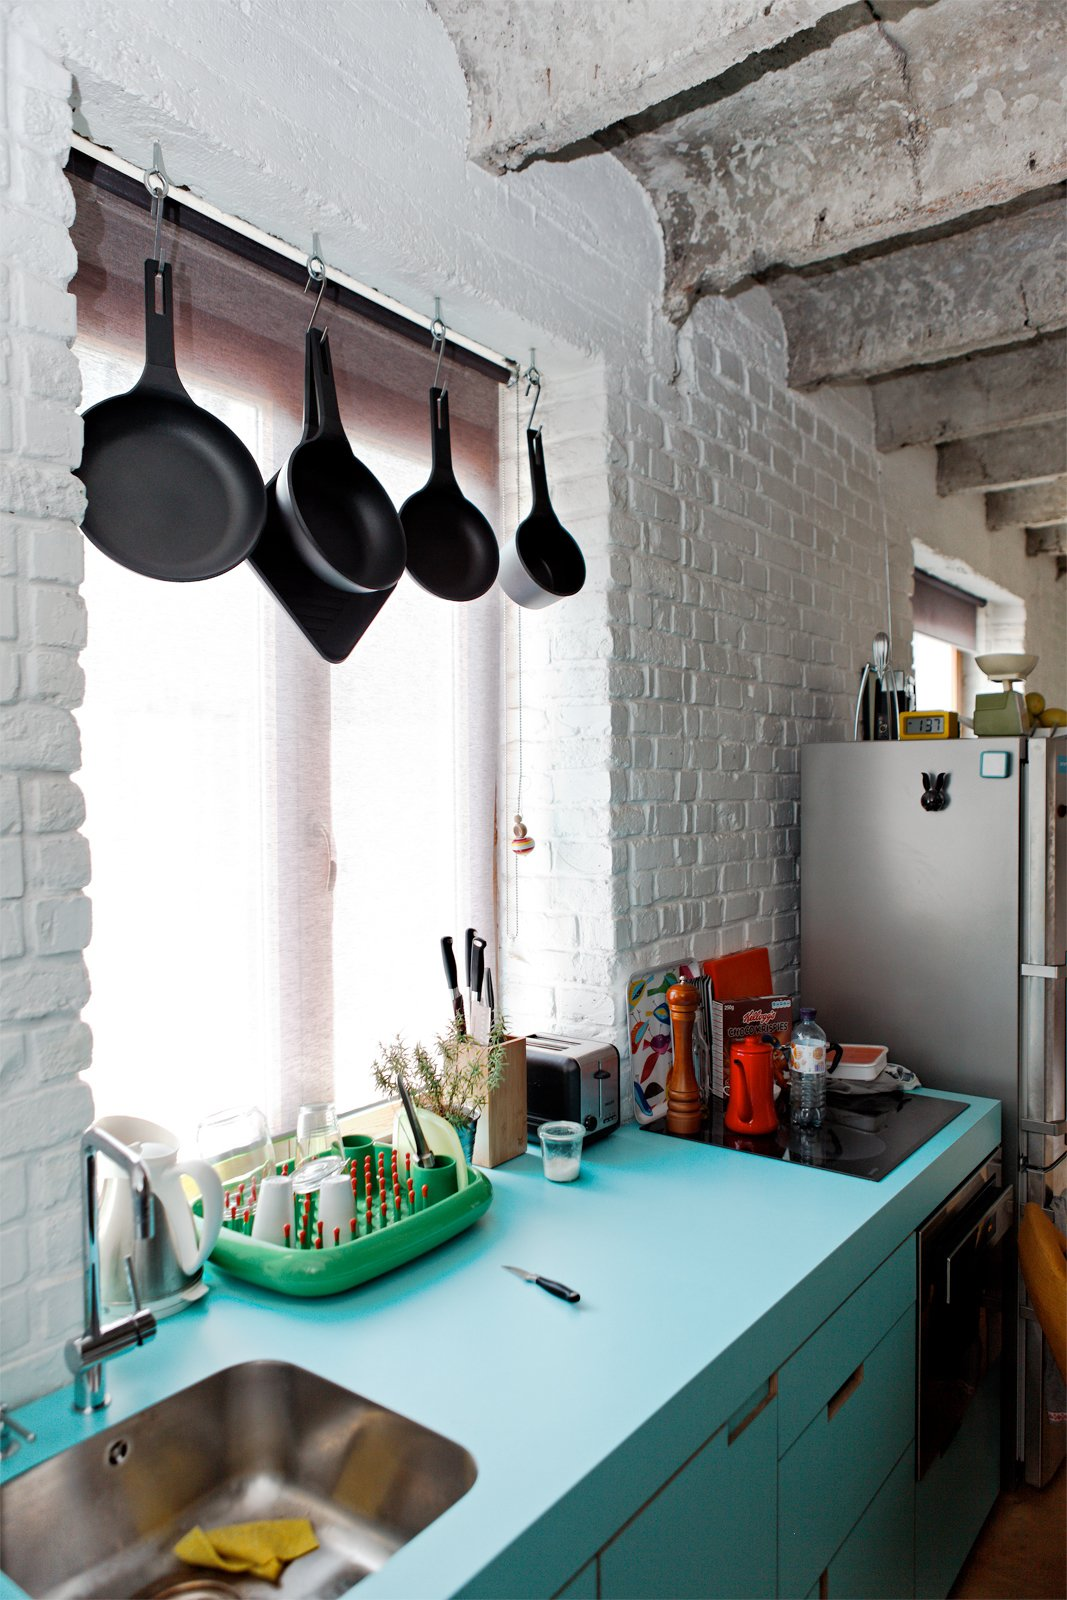 A green Dish Doctor by Marc Newson for Magis adds just a bit more color to the blue facing of the kitchen sink and cabinets.  Photo 2 of 11 in 10 Charming Brick Interiors from A Little Apartment Gets a Solid Renovation